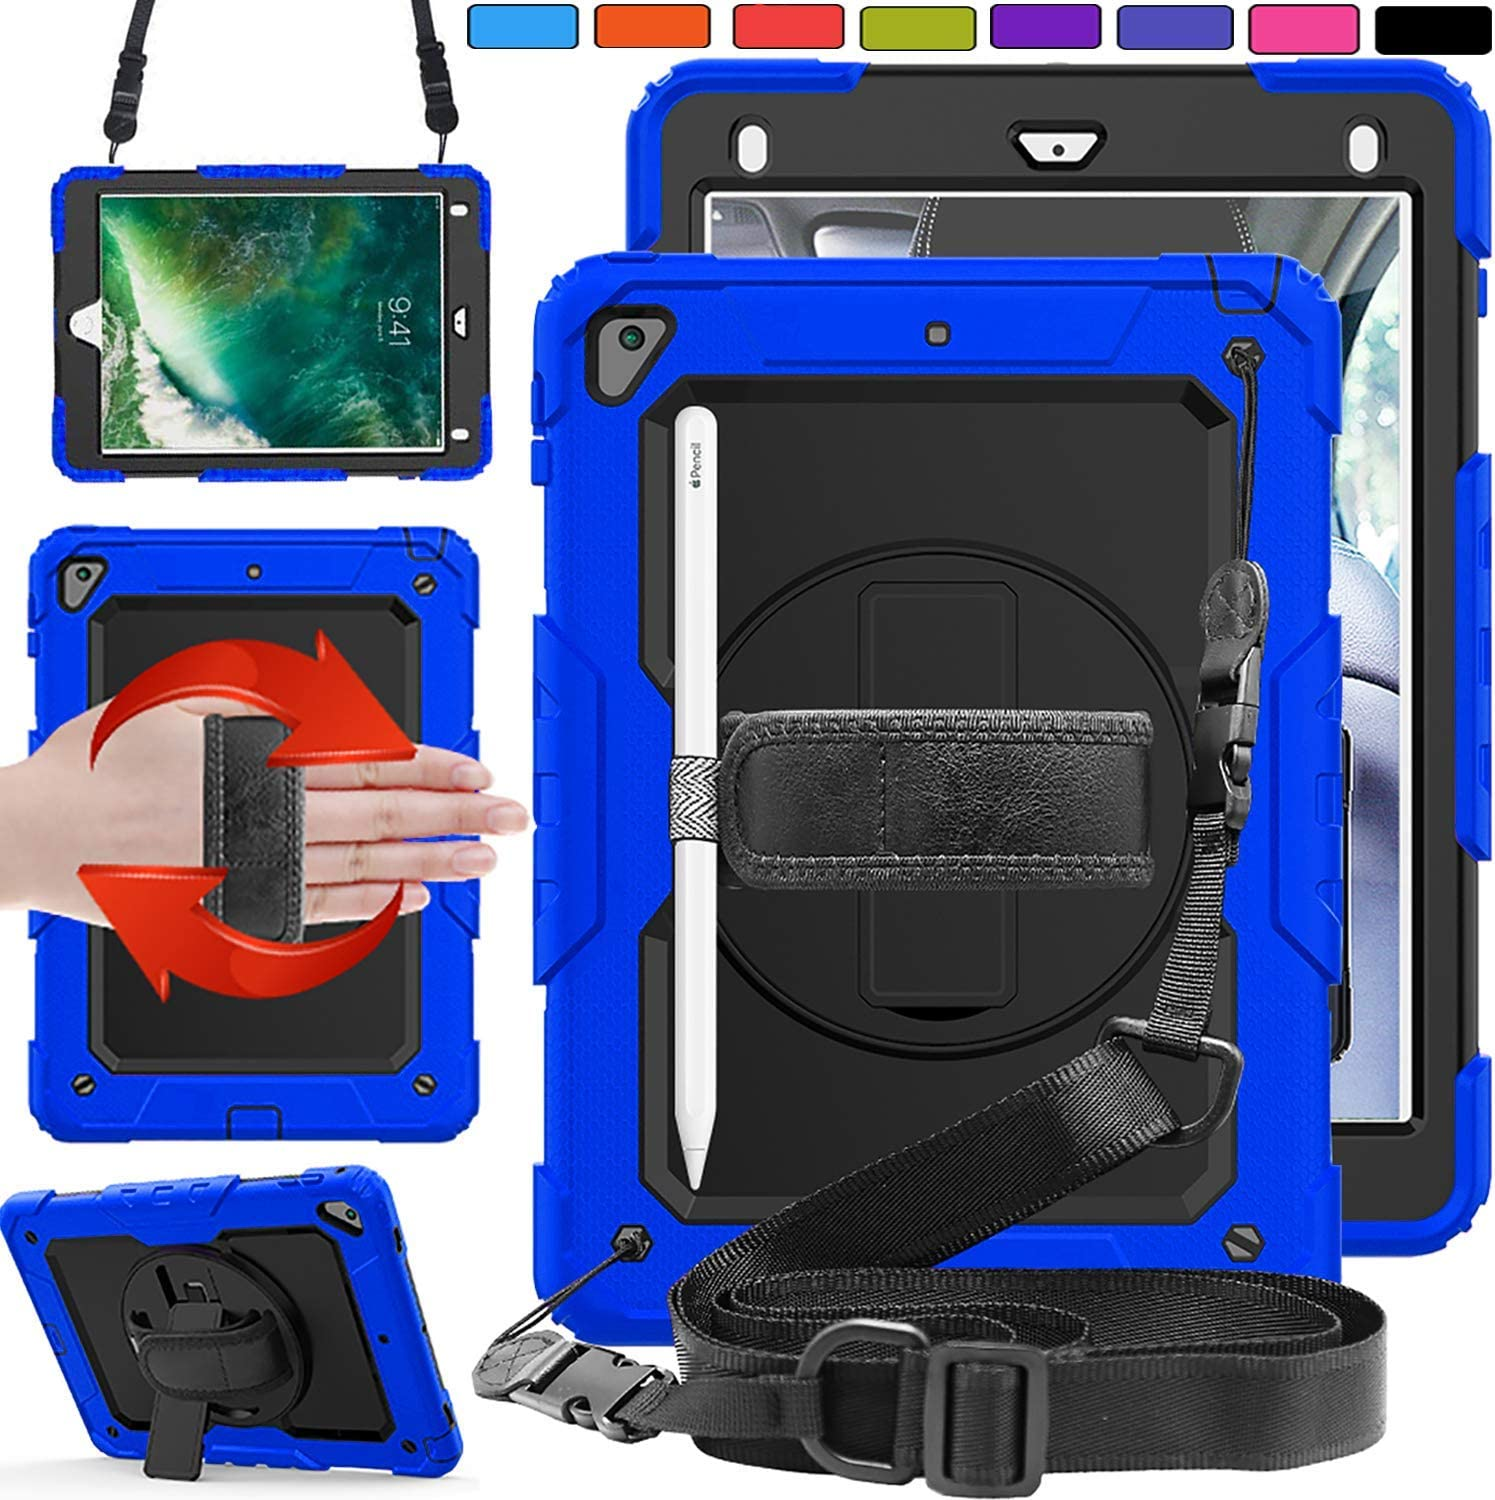 DuraSafe Cases for iPad Mini 4th 5th Gen 7.9 [ Mini 5 4 Gen ] Full-Body Protective Shock Proof Cover with Shoulder Strap - Blue